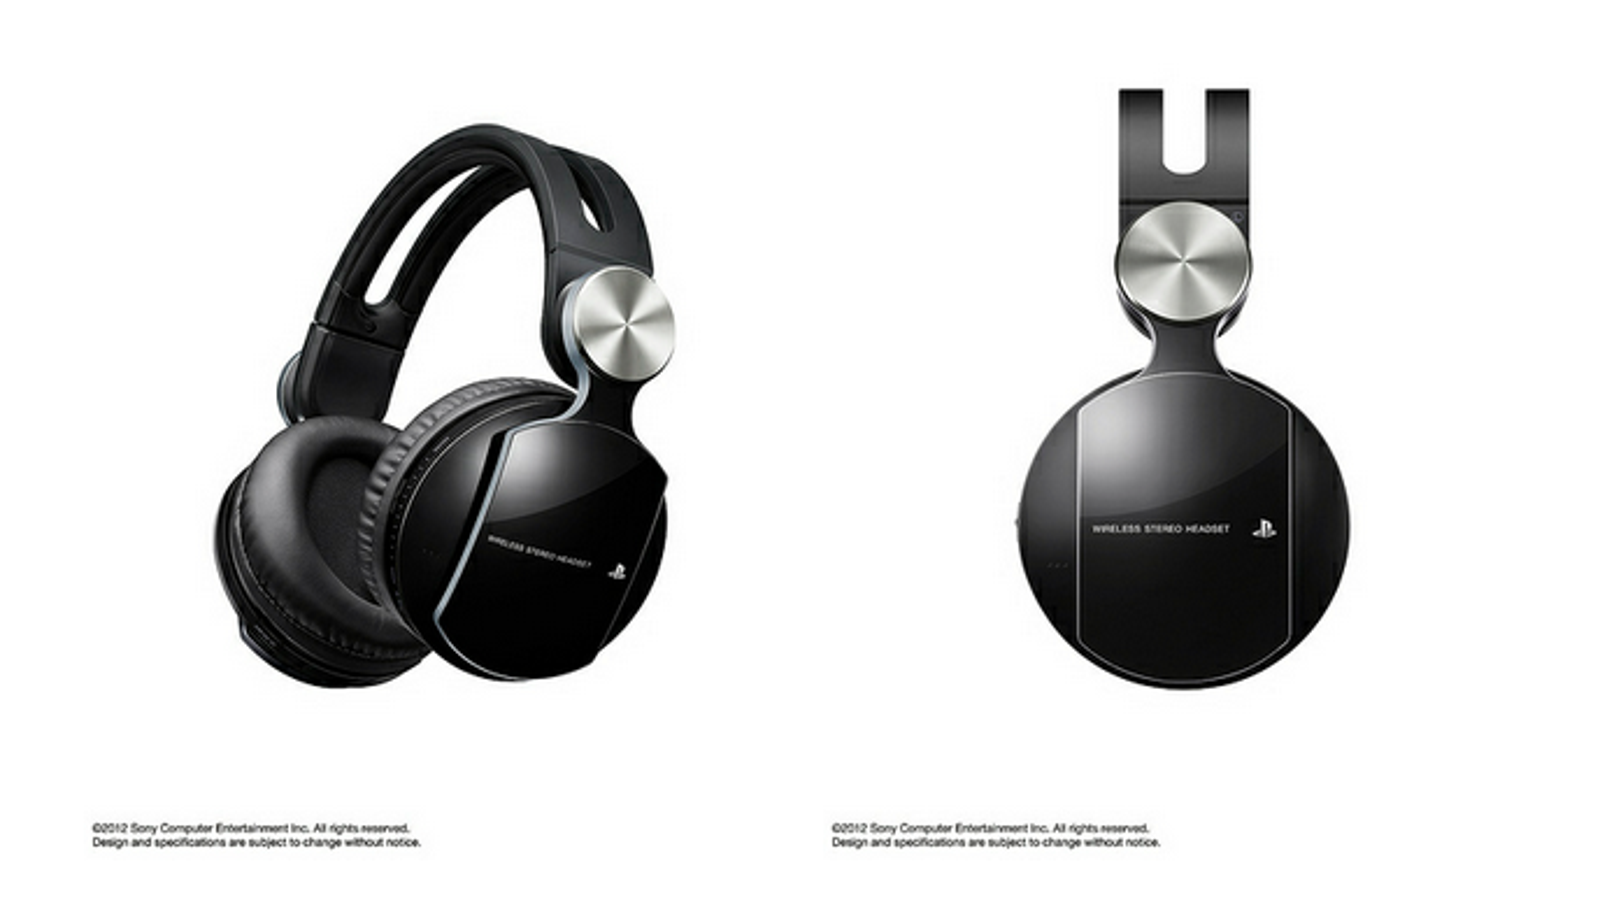 apple pods earbuds by apple - Sony PS3's New Gaming Headset Brings Extra Bass